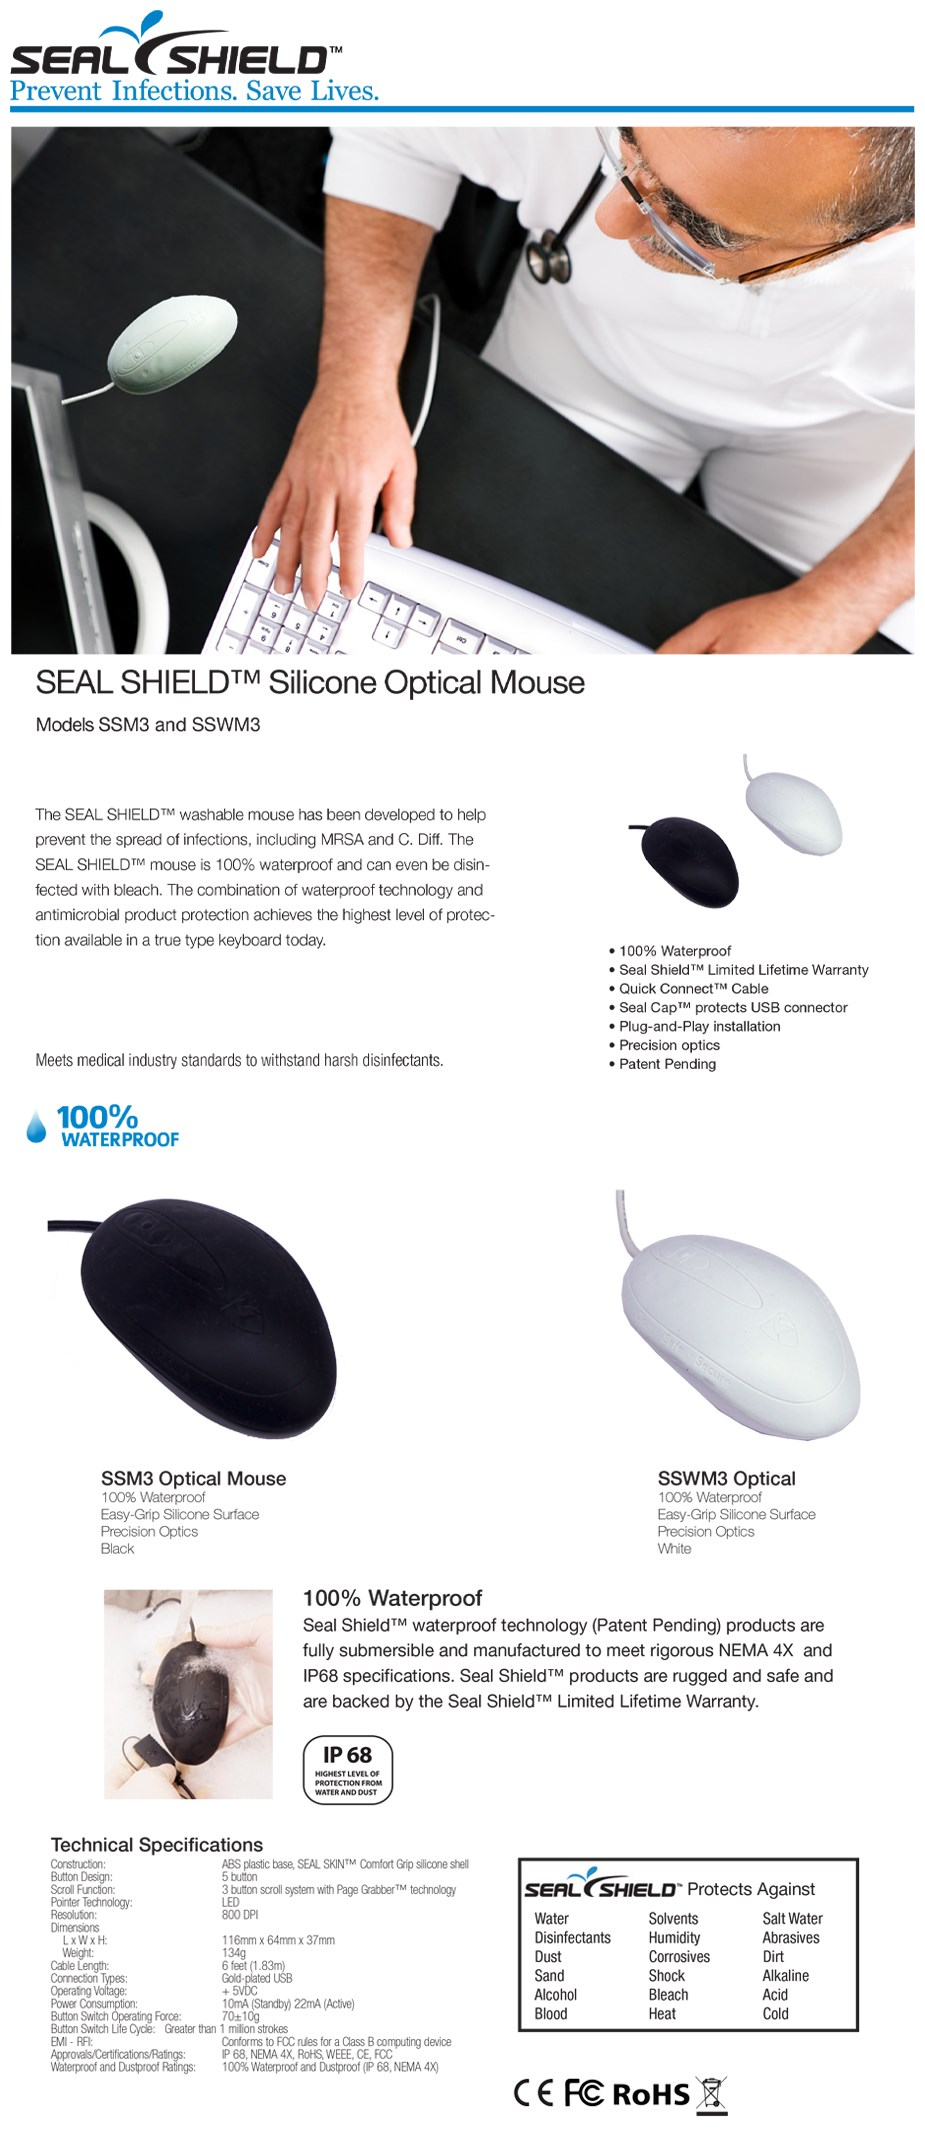 Seal Shield Silicone Waterproof Optical Mouse - Black - Overview 1